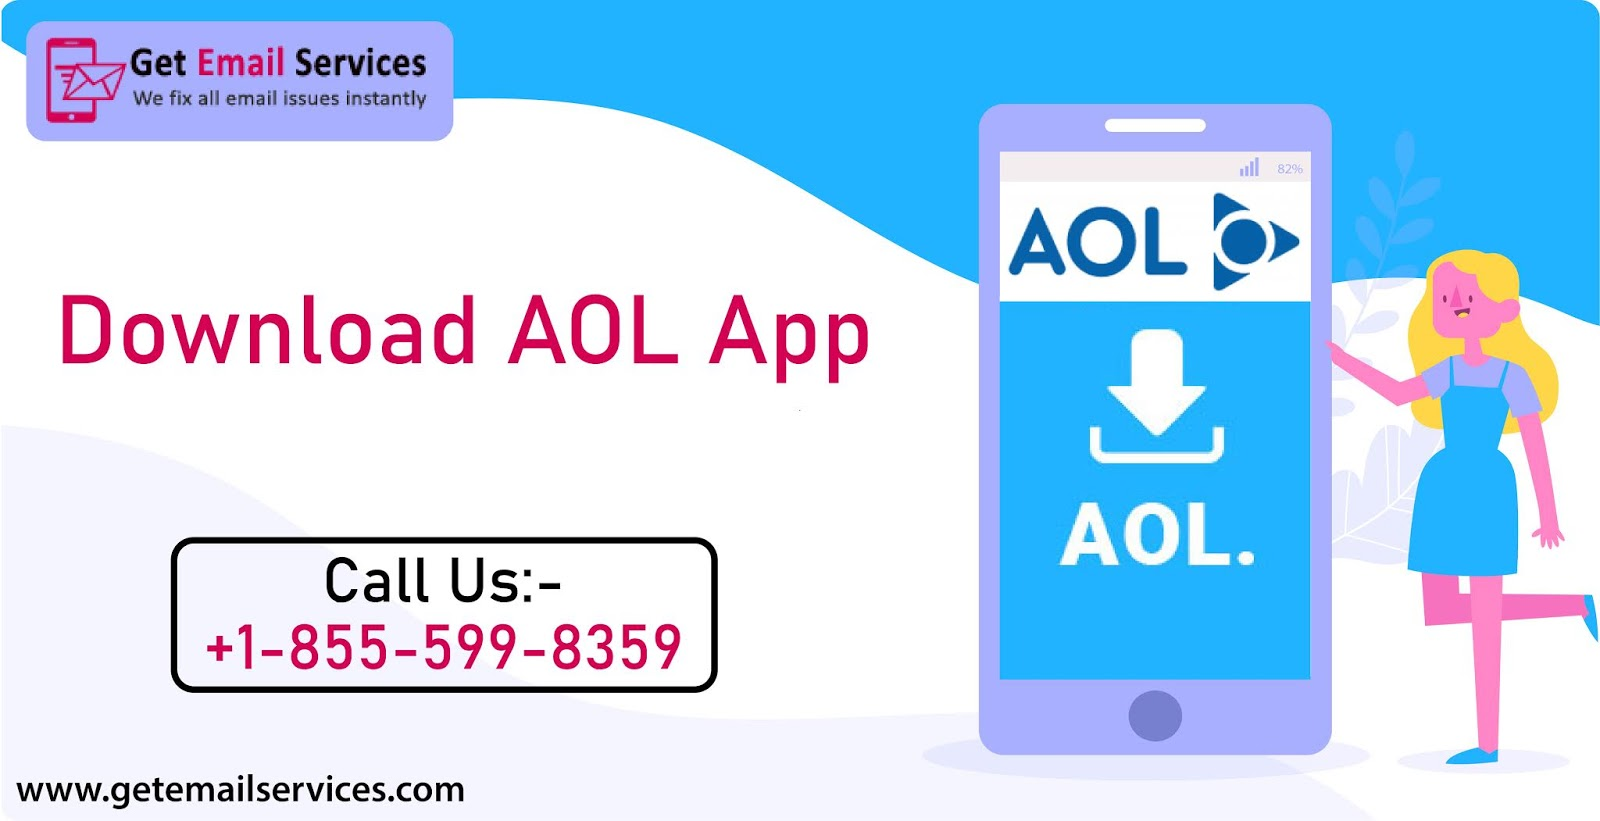 Email Help Aol Mail App Power At Your Fingertips